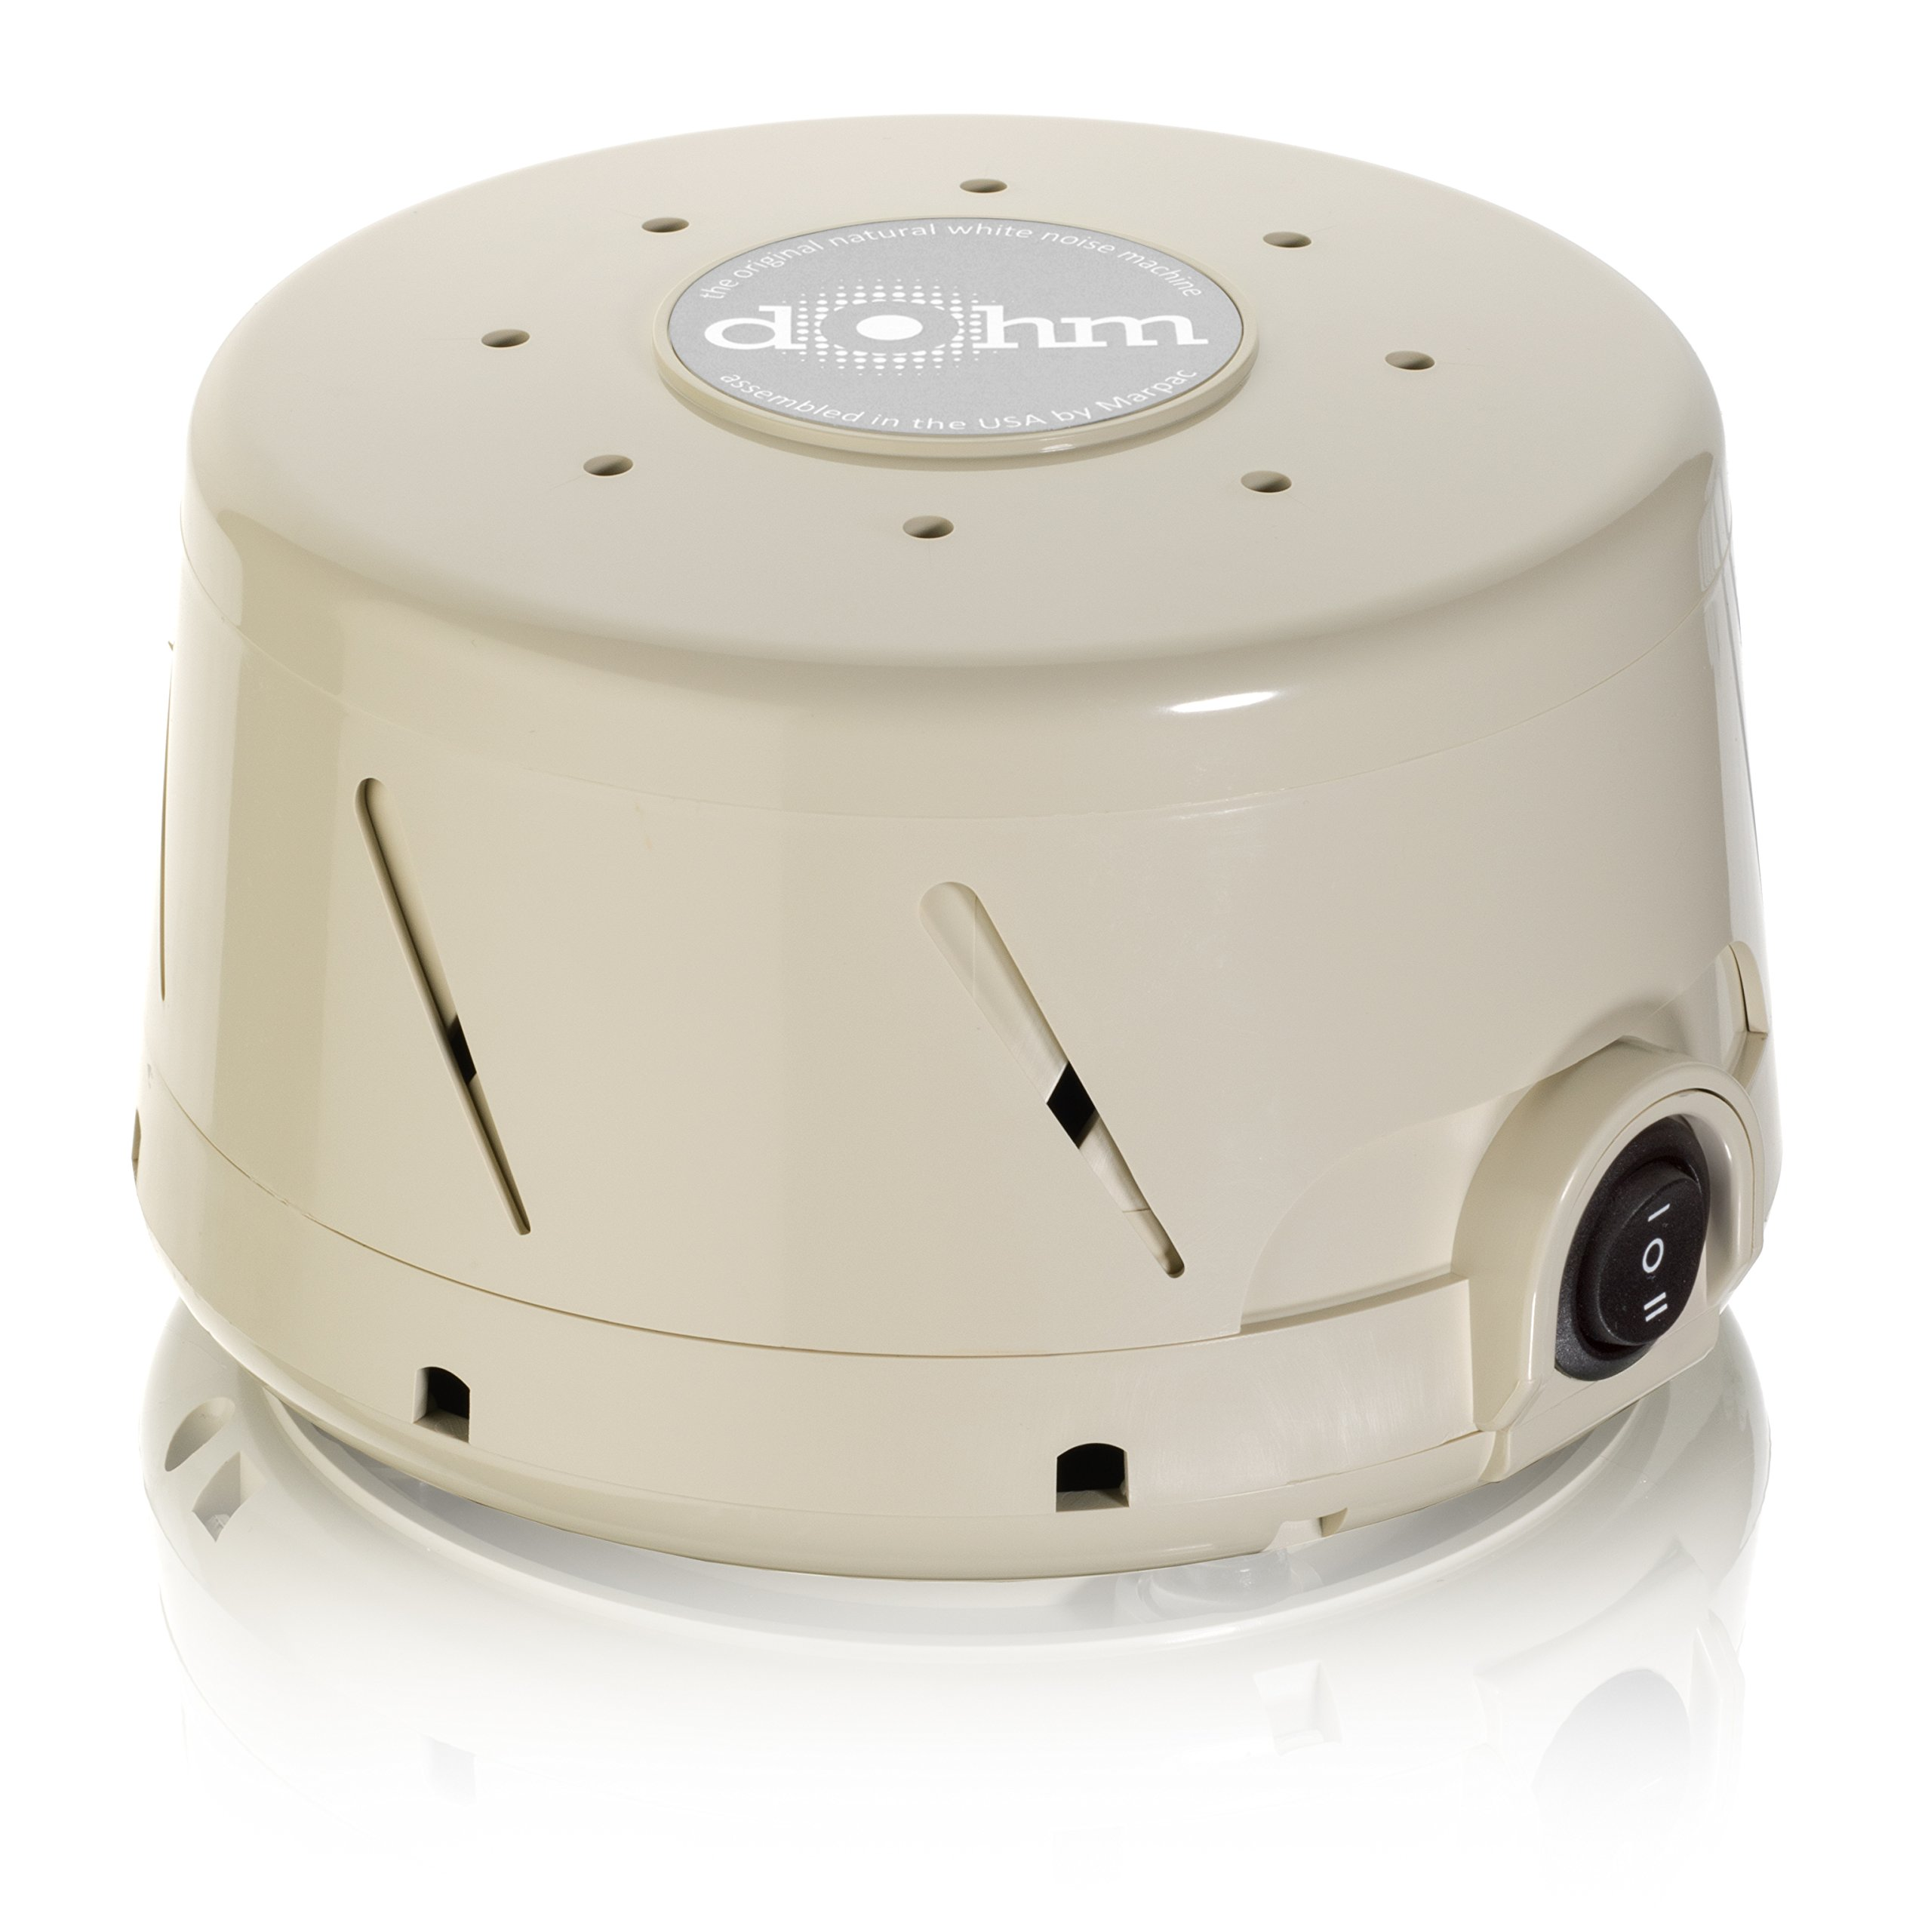 Marpac Dohm-DS All-Natural White Noise Sound Machine, Tan